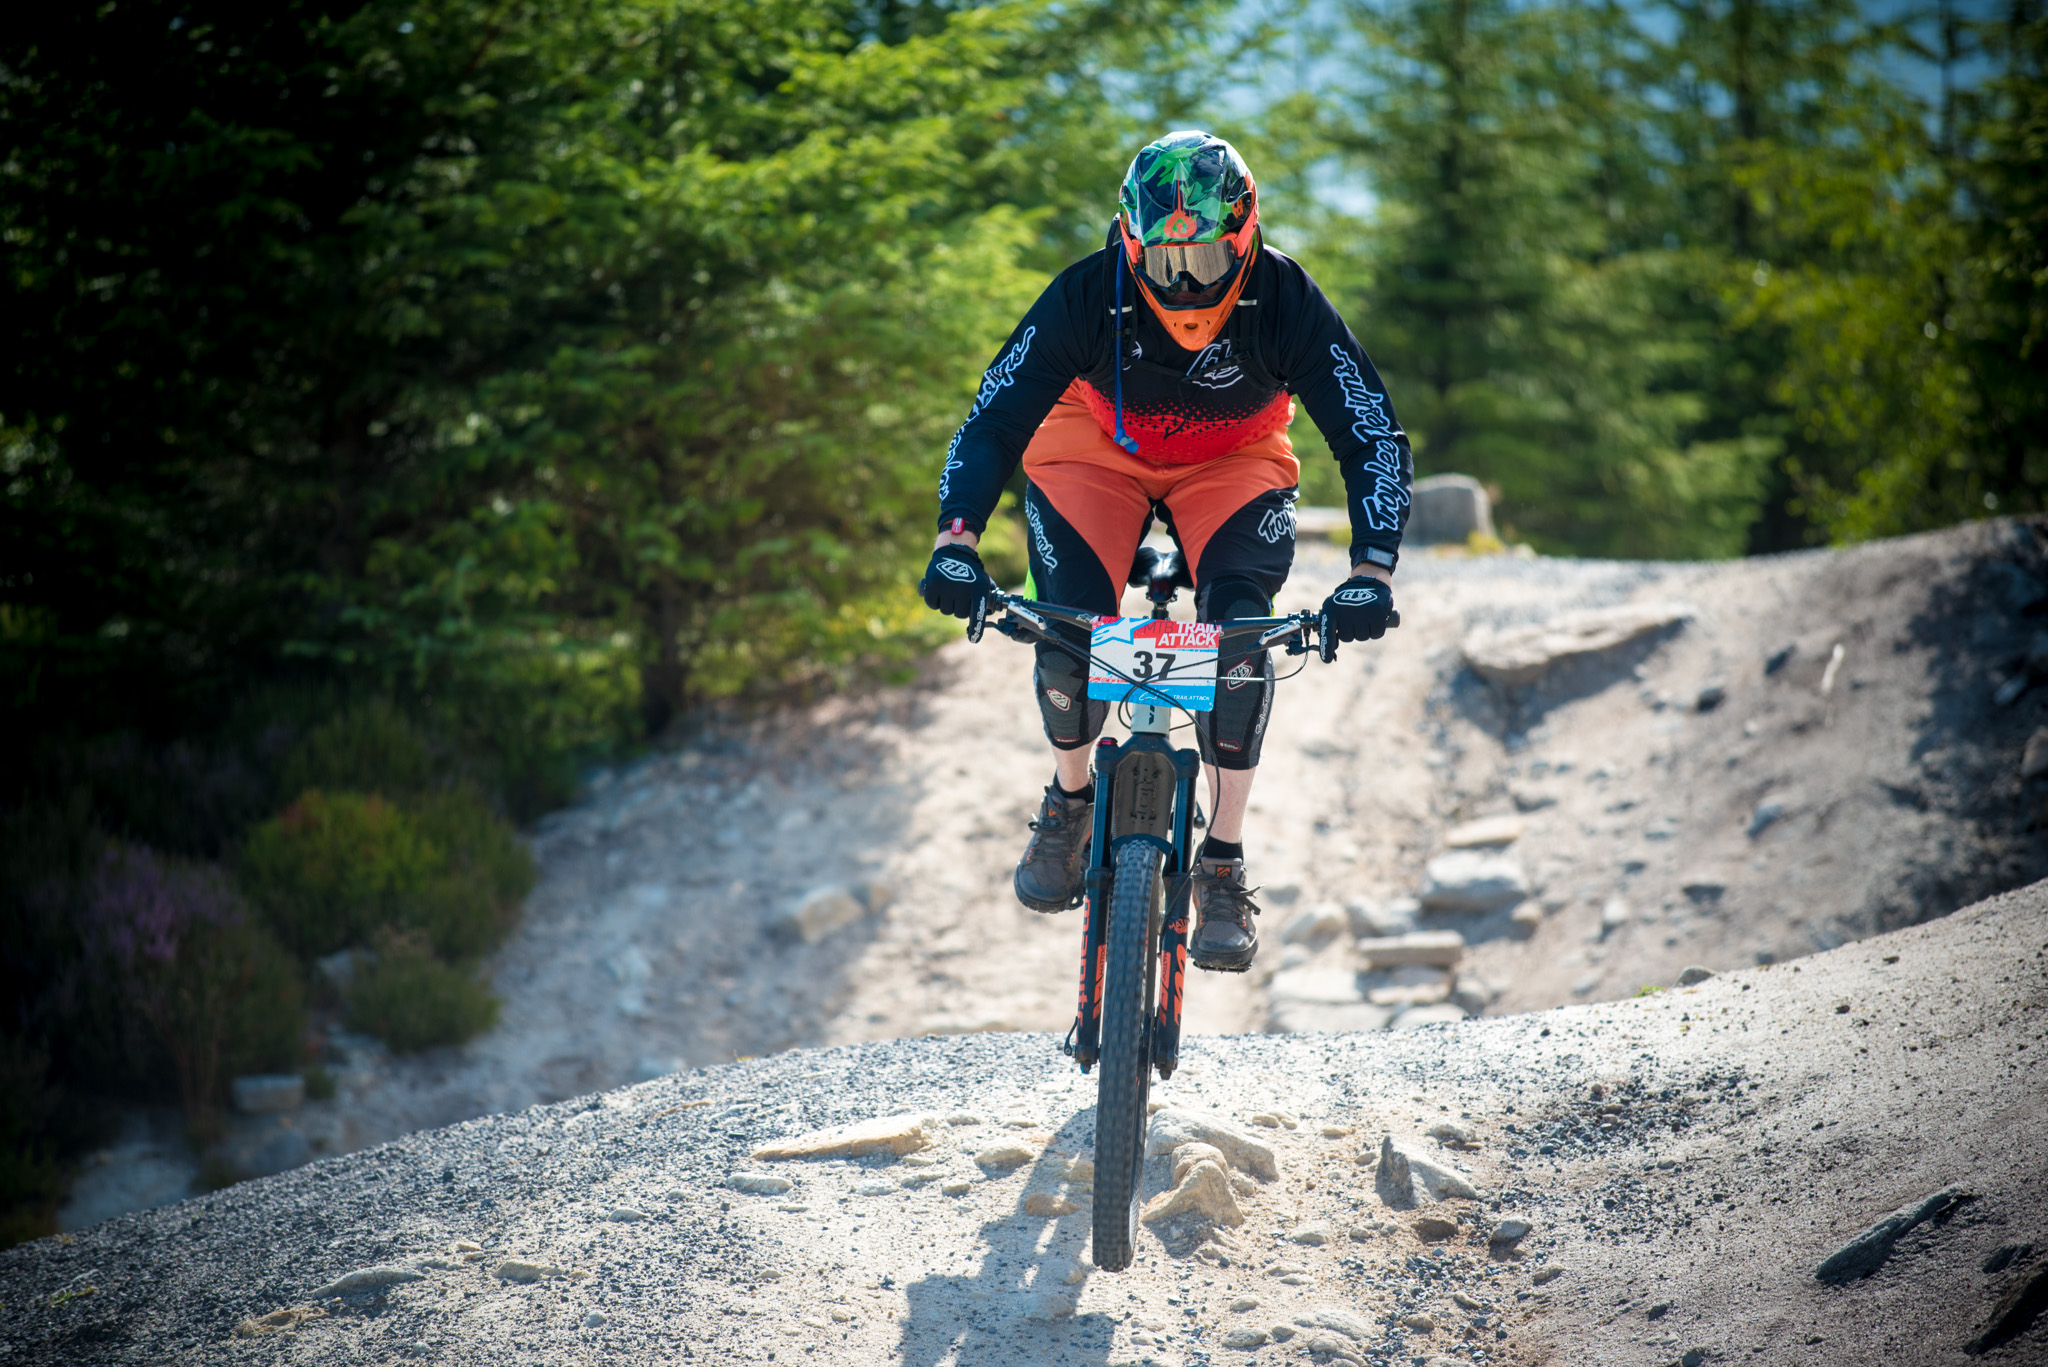 DH racing with a difference: Alpinestars MTB Trail Attack at Antur Stiniog June 30th